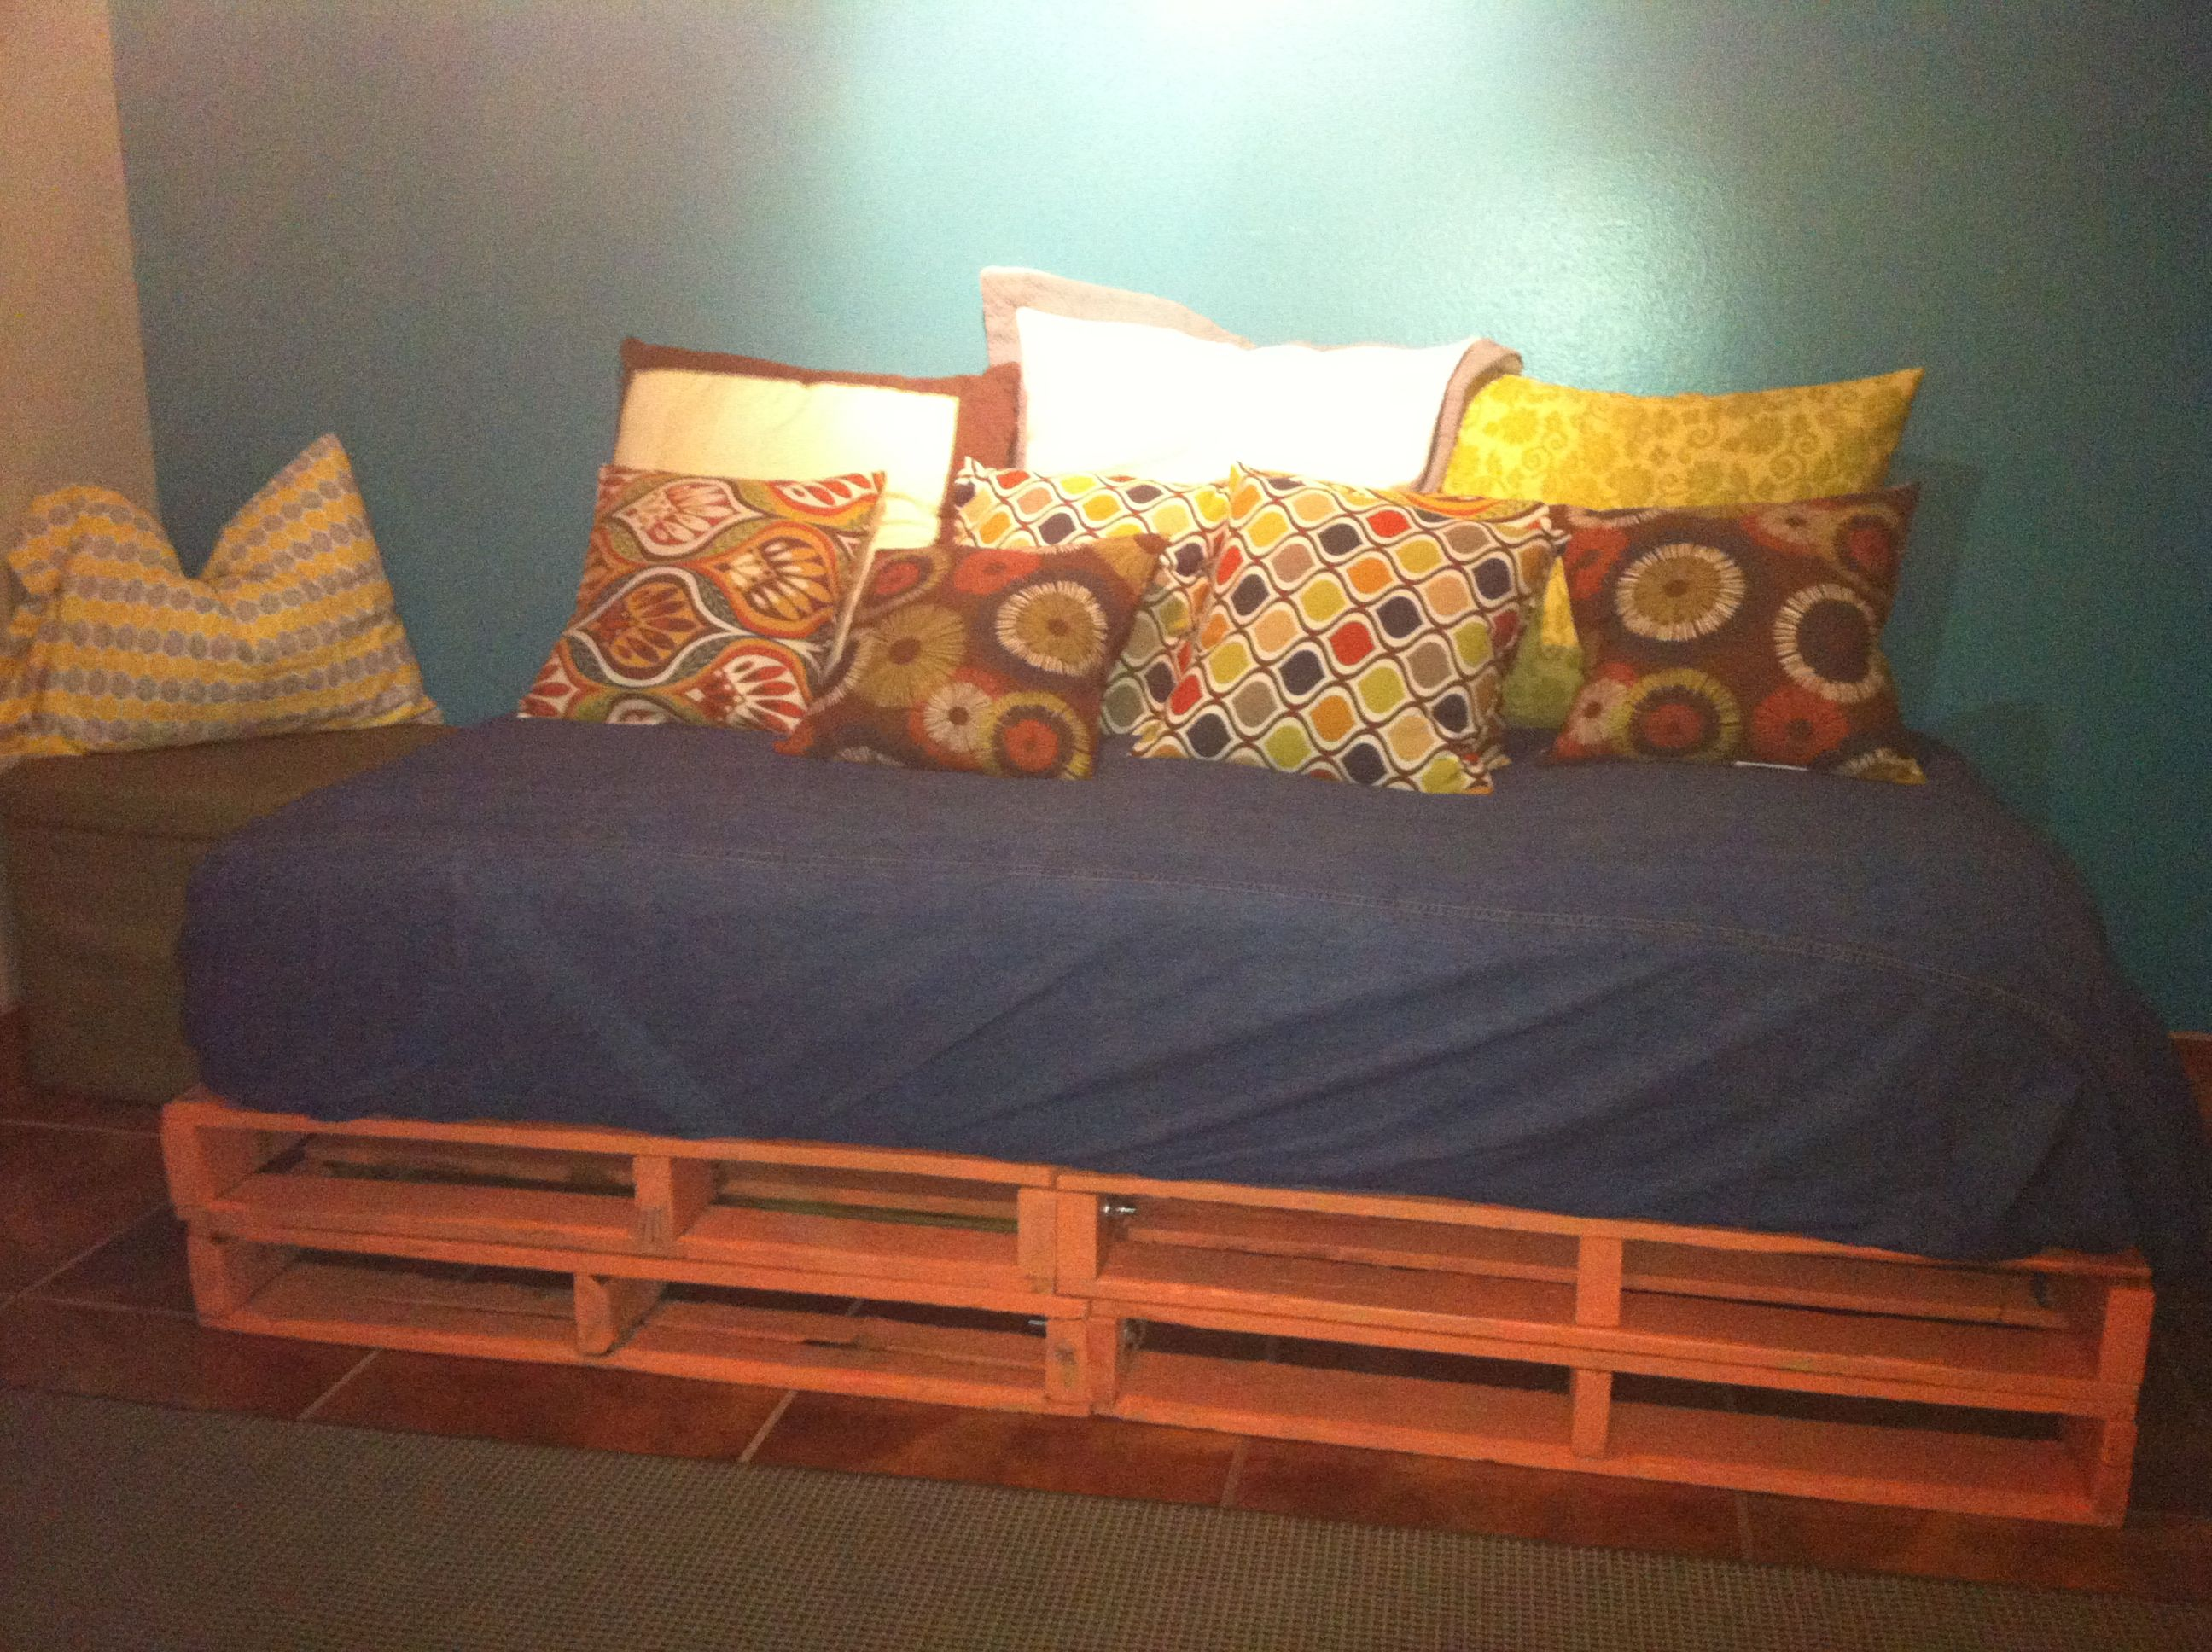 Pallet Bed Sofa Made With 4 Pallets Bolted Together Painted Them Bought A Twin Bunk Bed Mattress Bundle From